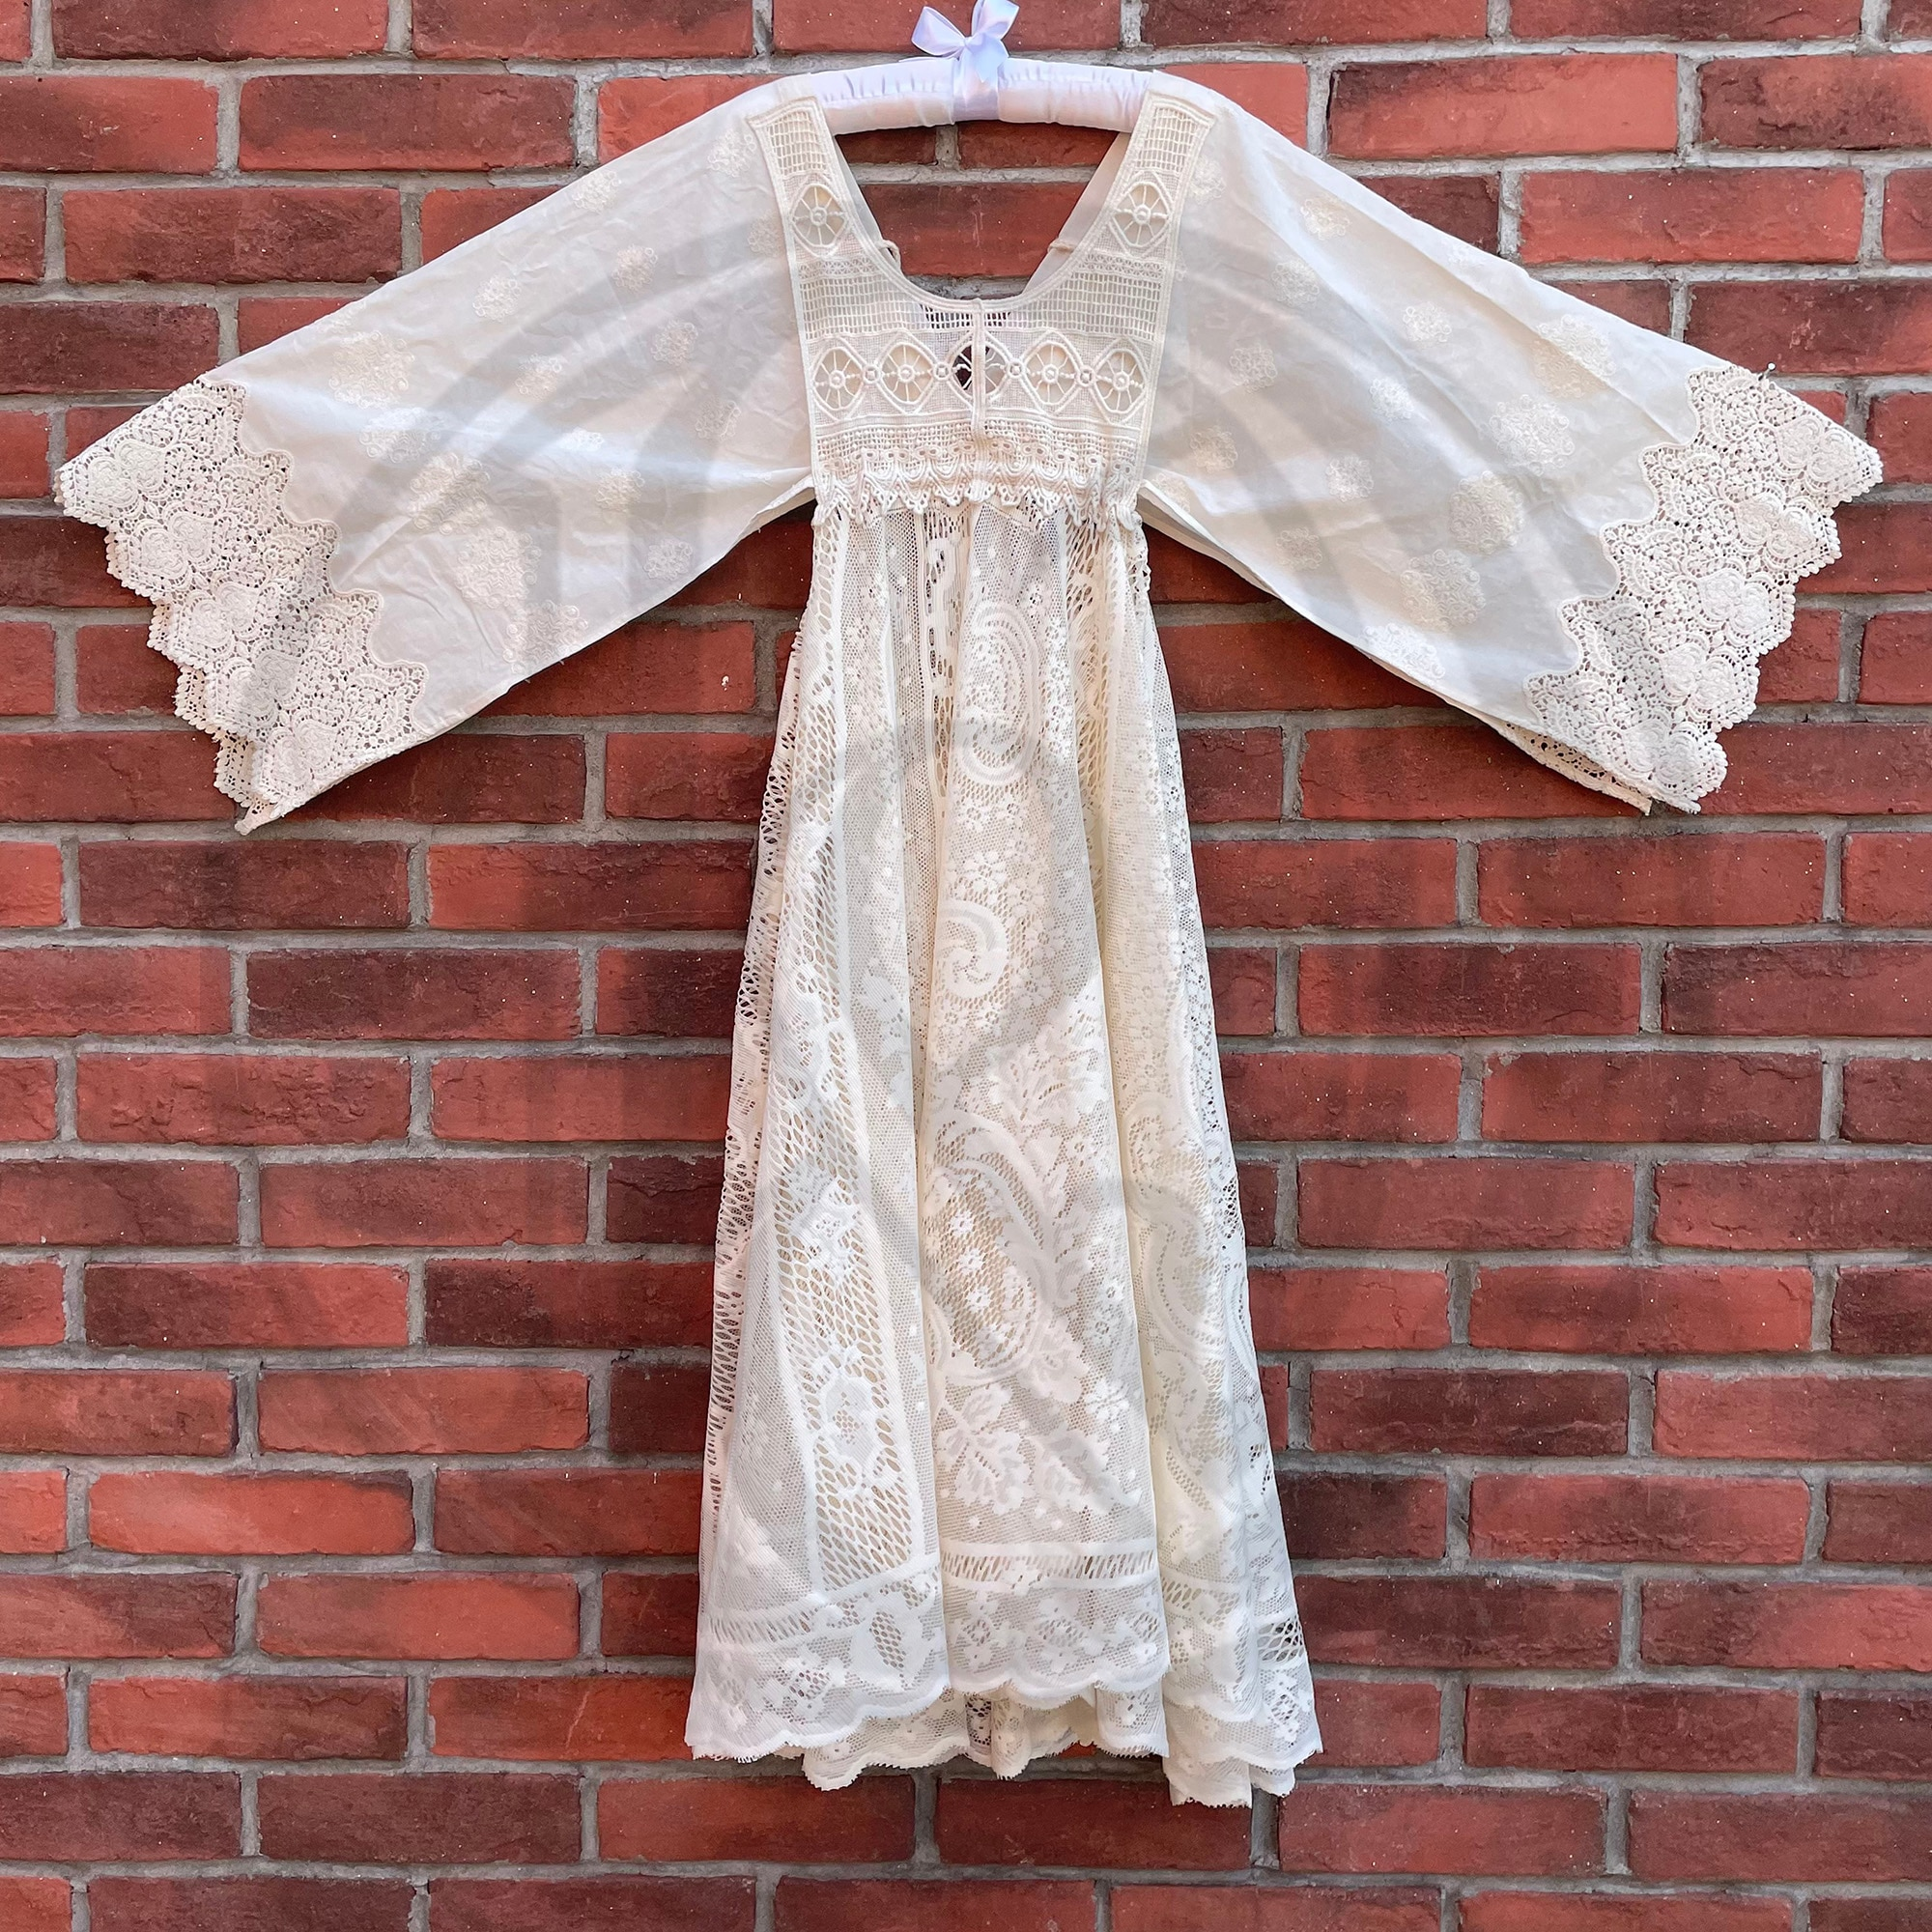 Boho Lace Photo Shoot 4-8 Years Old Little Girl Dresses with Tassels Evening Party Costume for Photography Studio Accessories